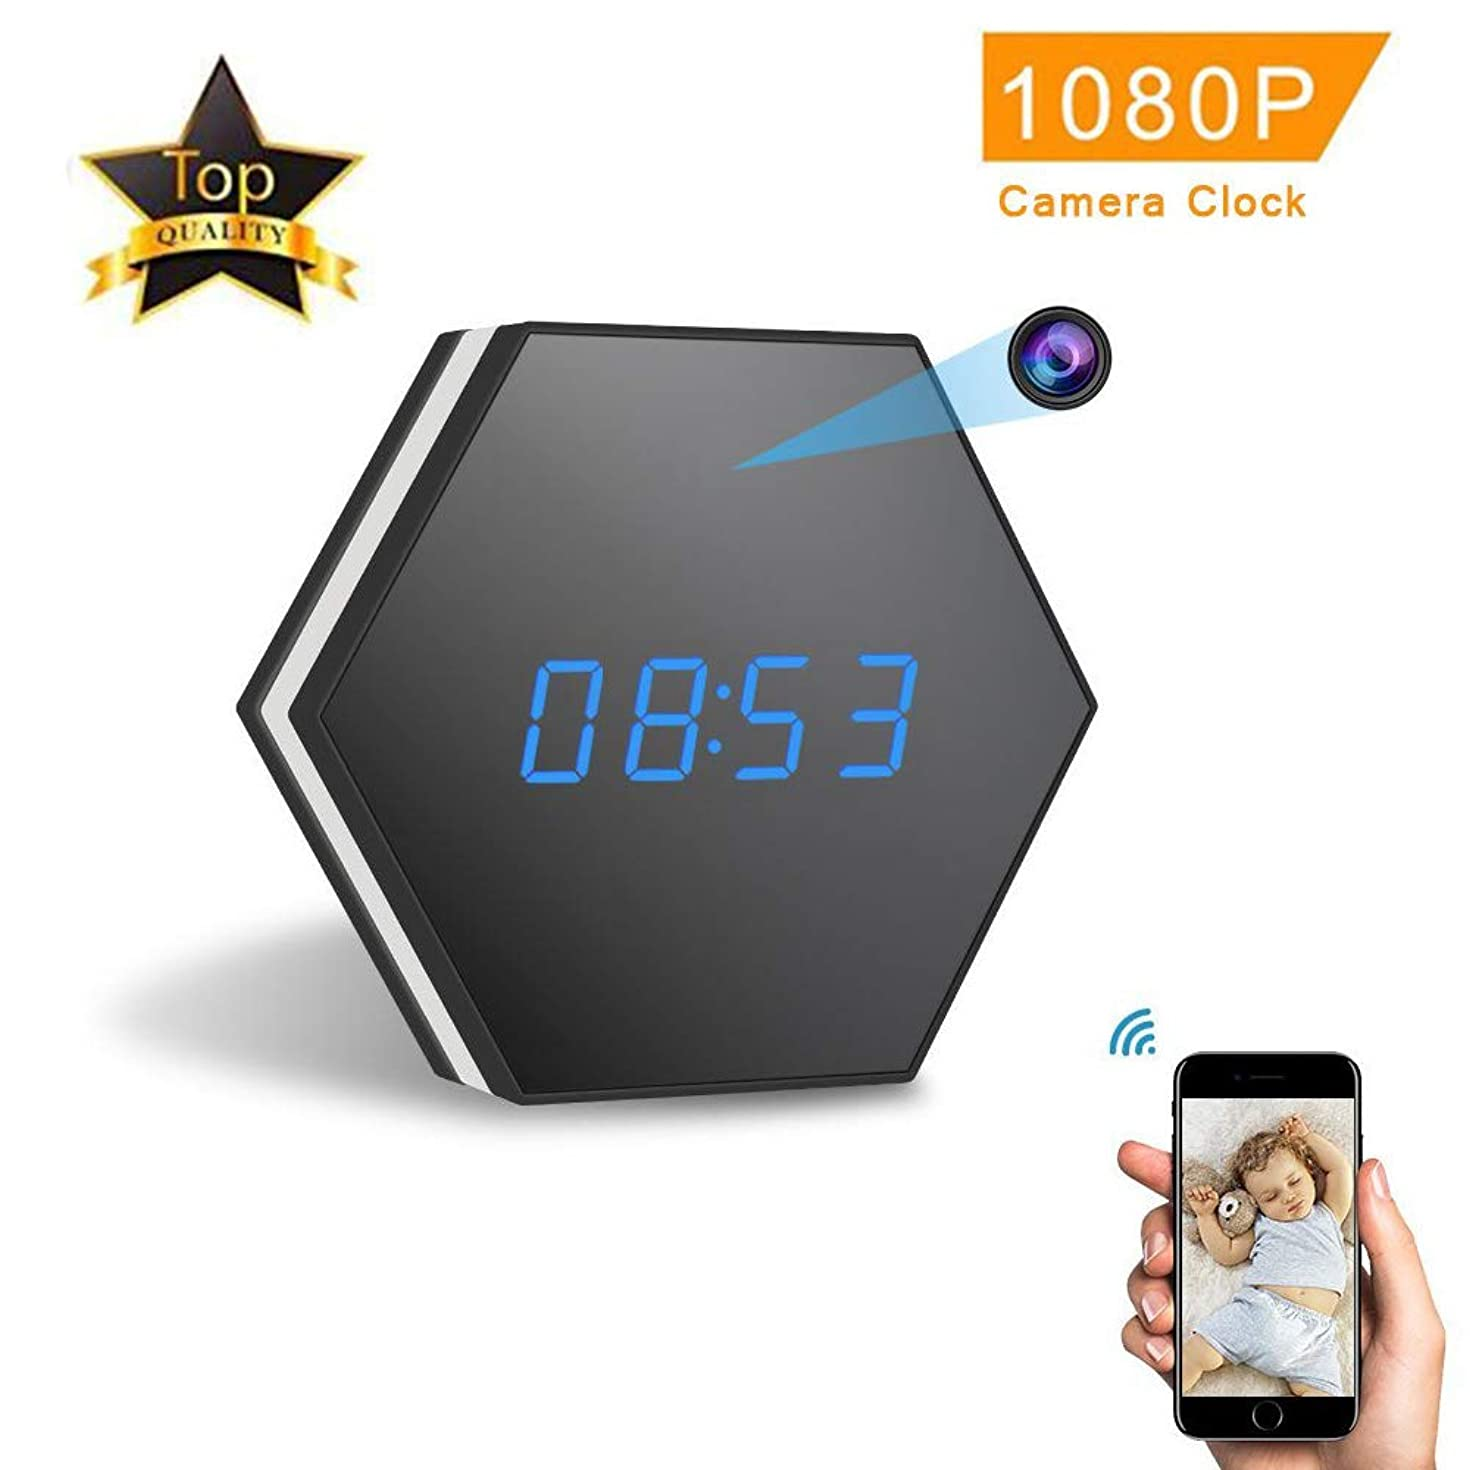 HUAXING Mini WiFi Hidden Camera, Smart Mirror Clock IP Night Vision Two-Way Audio Motion Video Recording/Remote Monitoring with iOS/Android App,NOTFCard